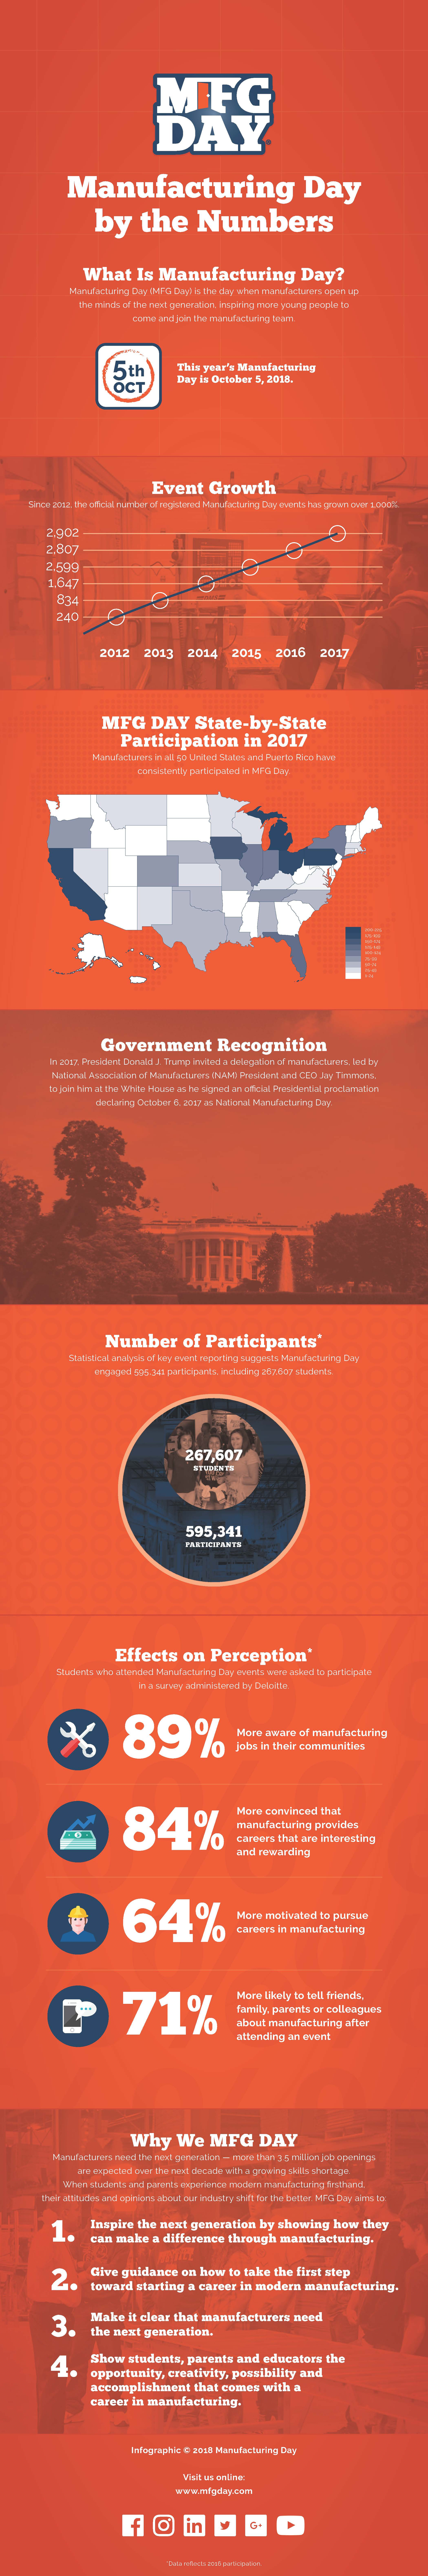 Manufacturing Day By the Numbers Infographic